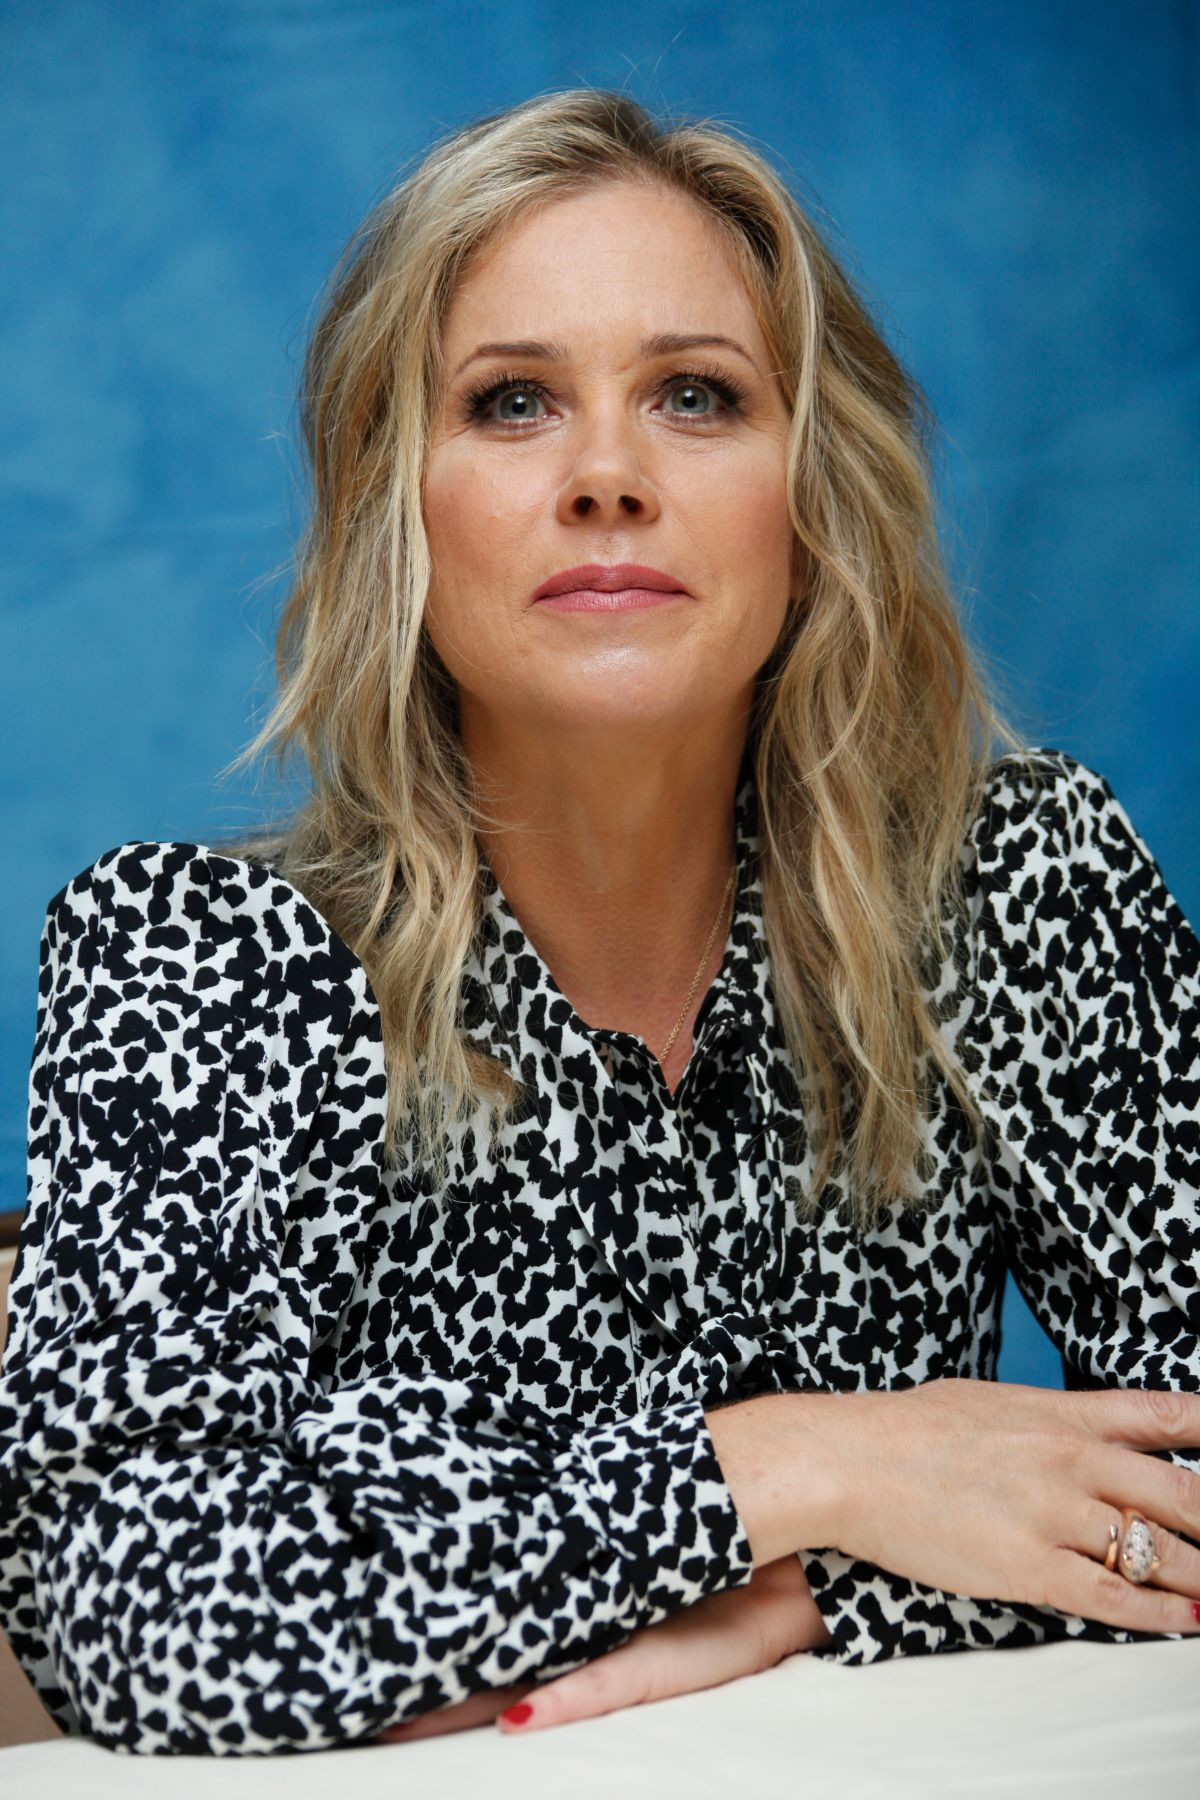 CHRISTINA APPLEGATE at Vacation Press Conference in Beverly Hills